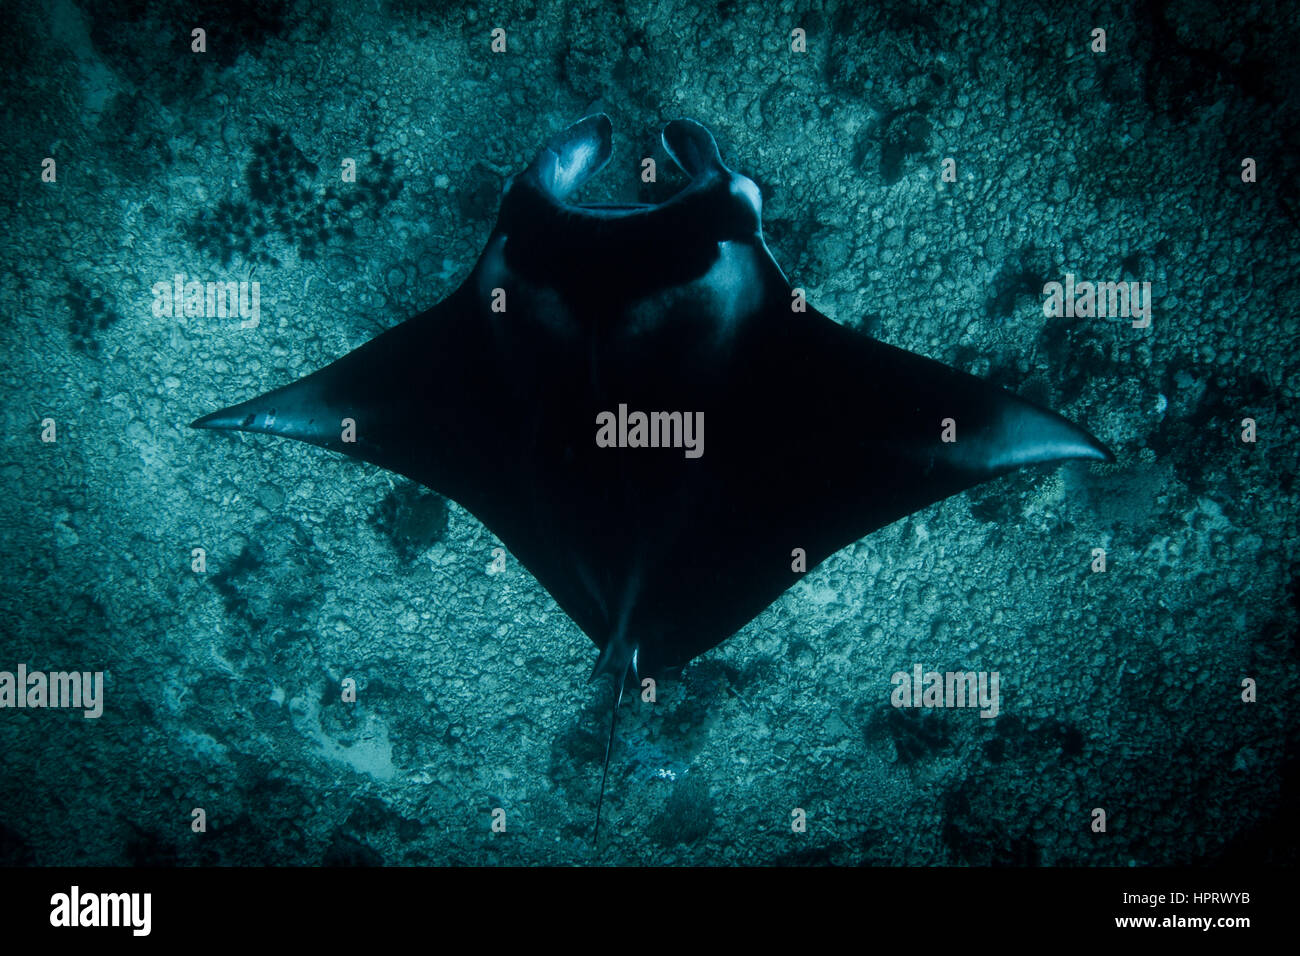 A Manta Ray - Manta alfredi - swims over the rubble reef at Manta point. Taken in Komodo National Park, Indonesia. - Stock Image